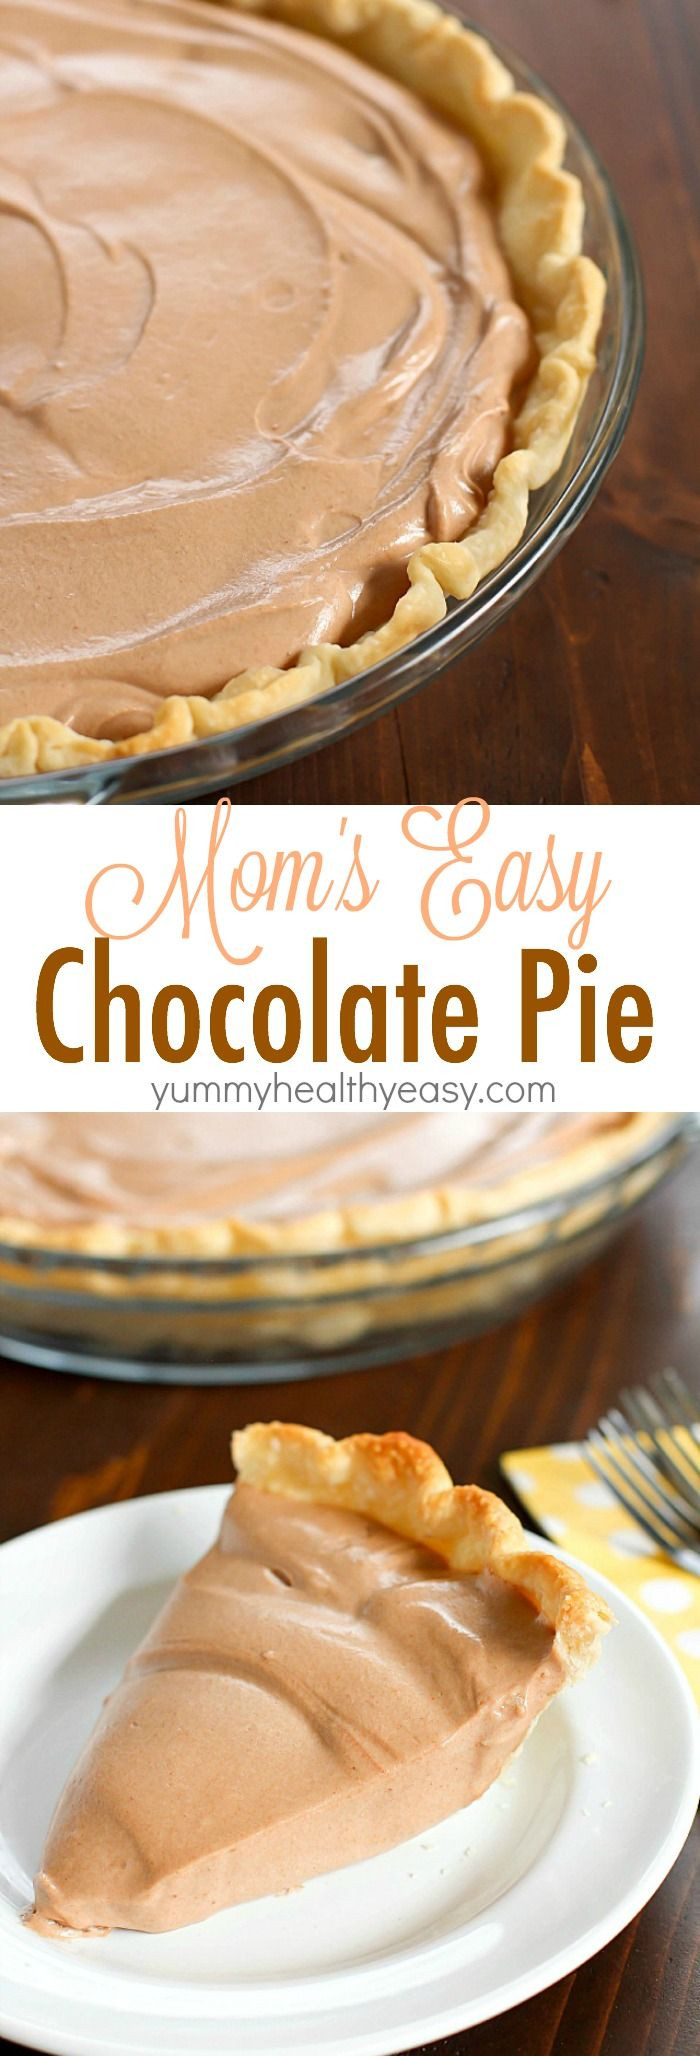 Thanksgiving Chocolate Pie  An incredibly Easy Chocolate Pie recipe that my Mom makes